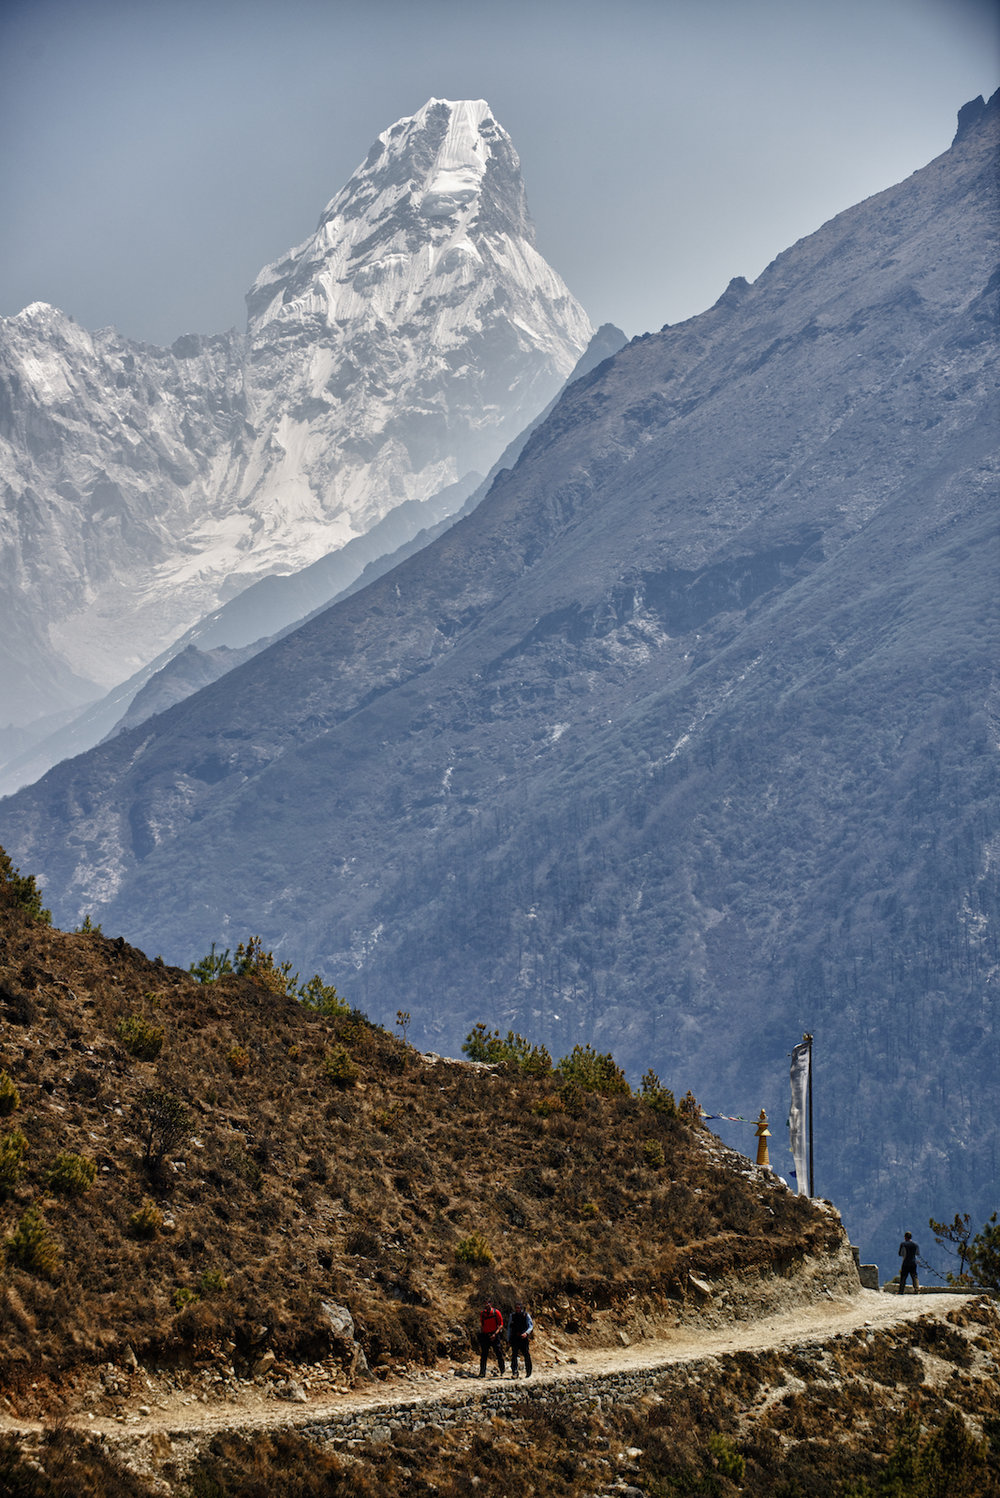 Ama Dablam and the trail to Mount Everest base camp in the Nepal Himalayas.  Image by New Orleans based travel photographer, Marc Pagani - marcpagani.com